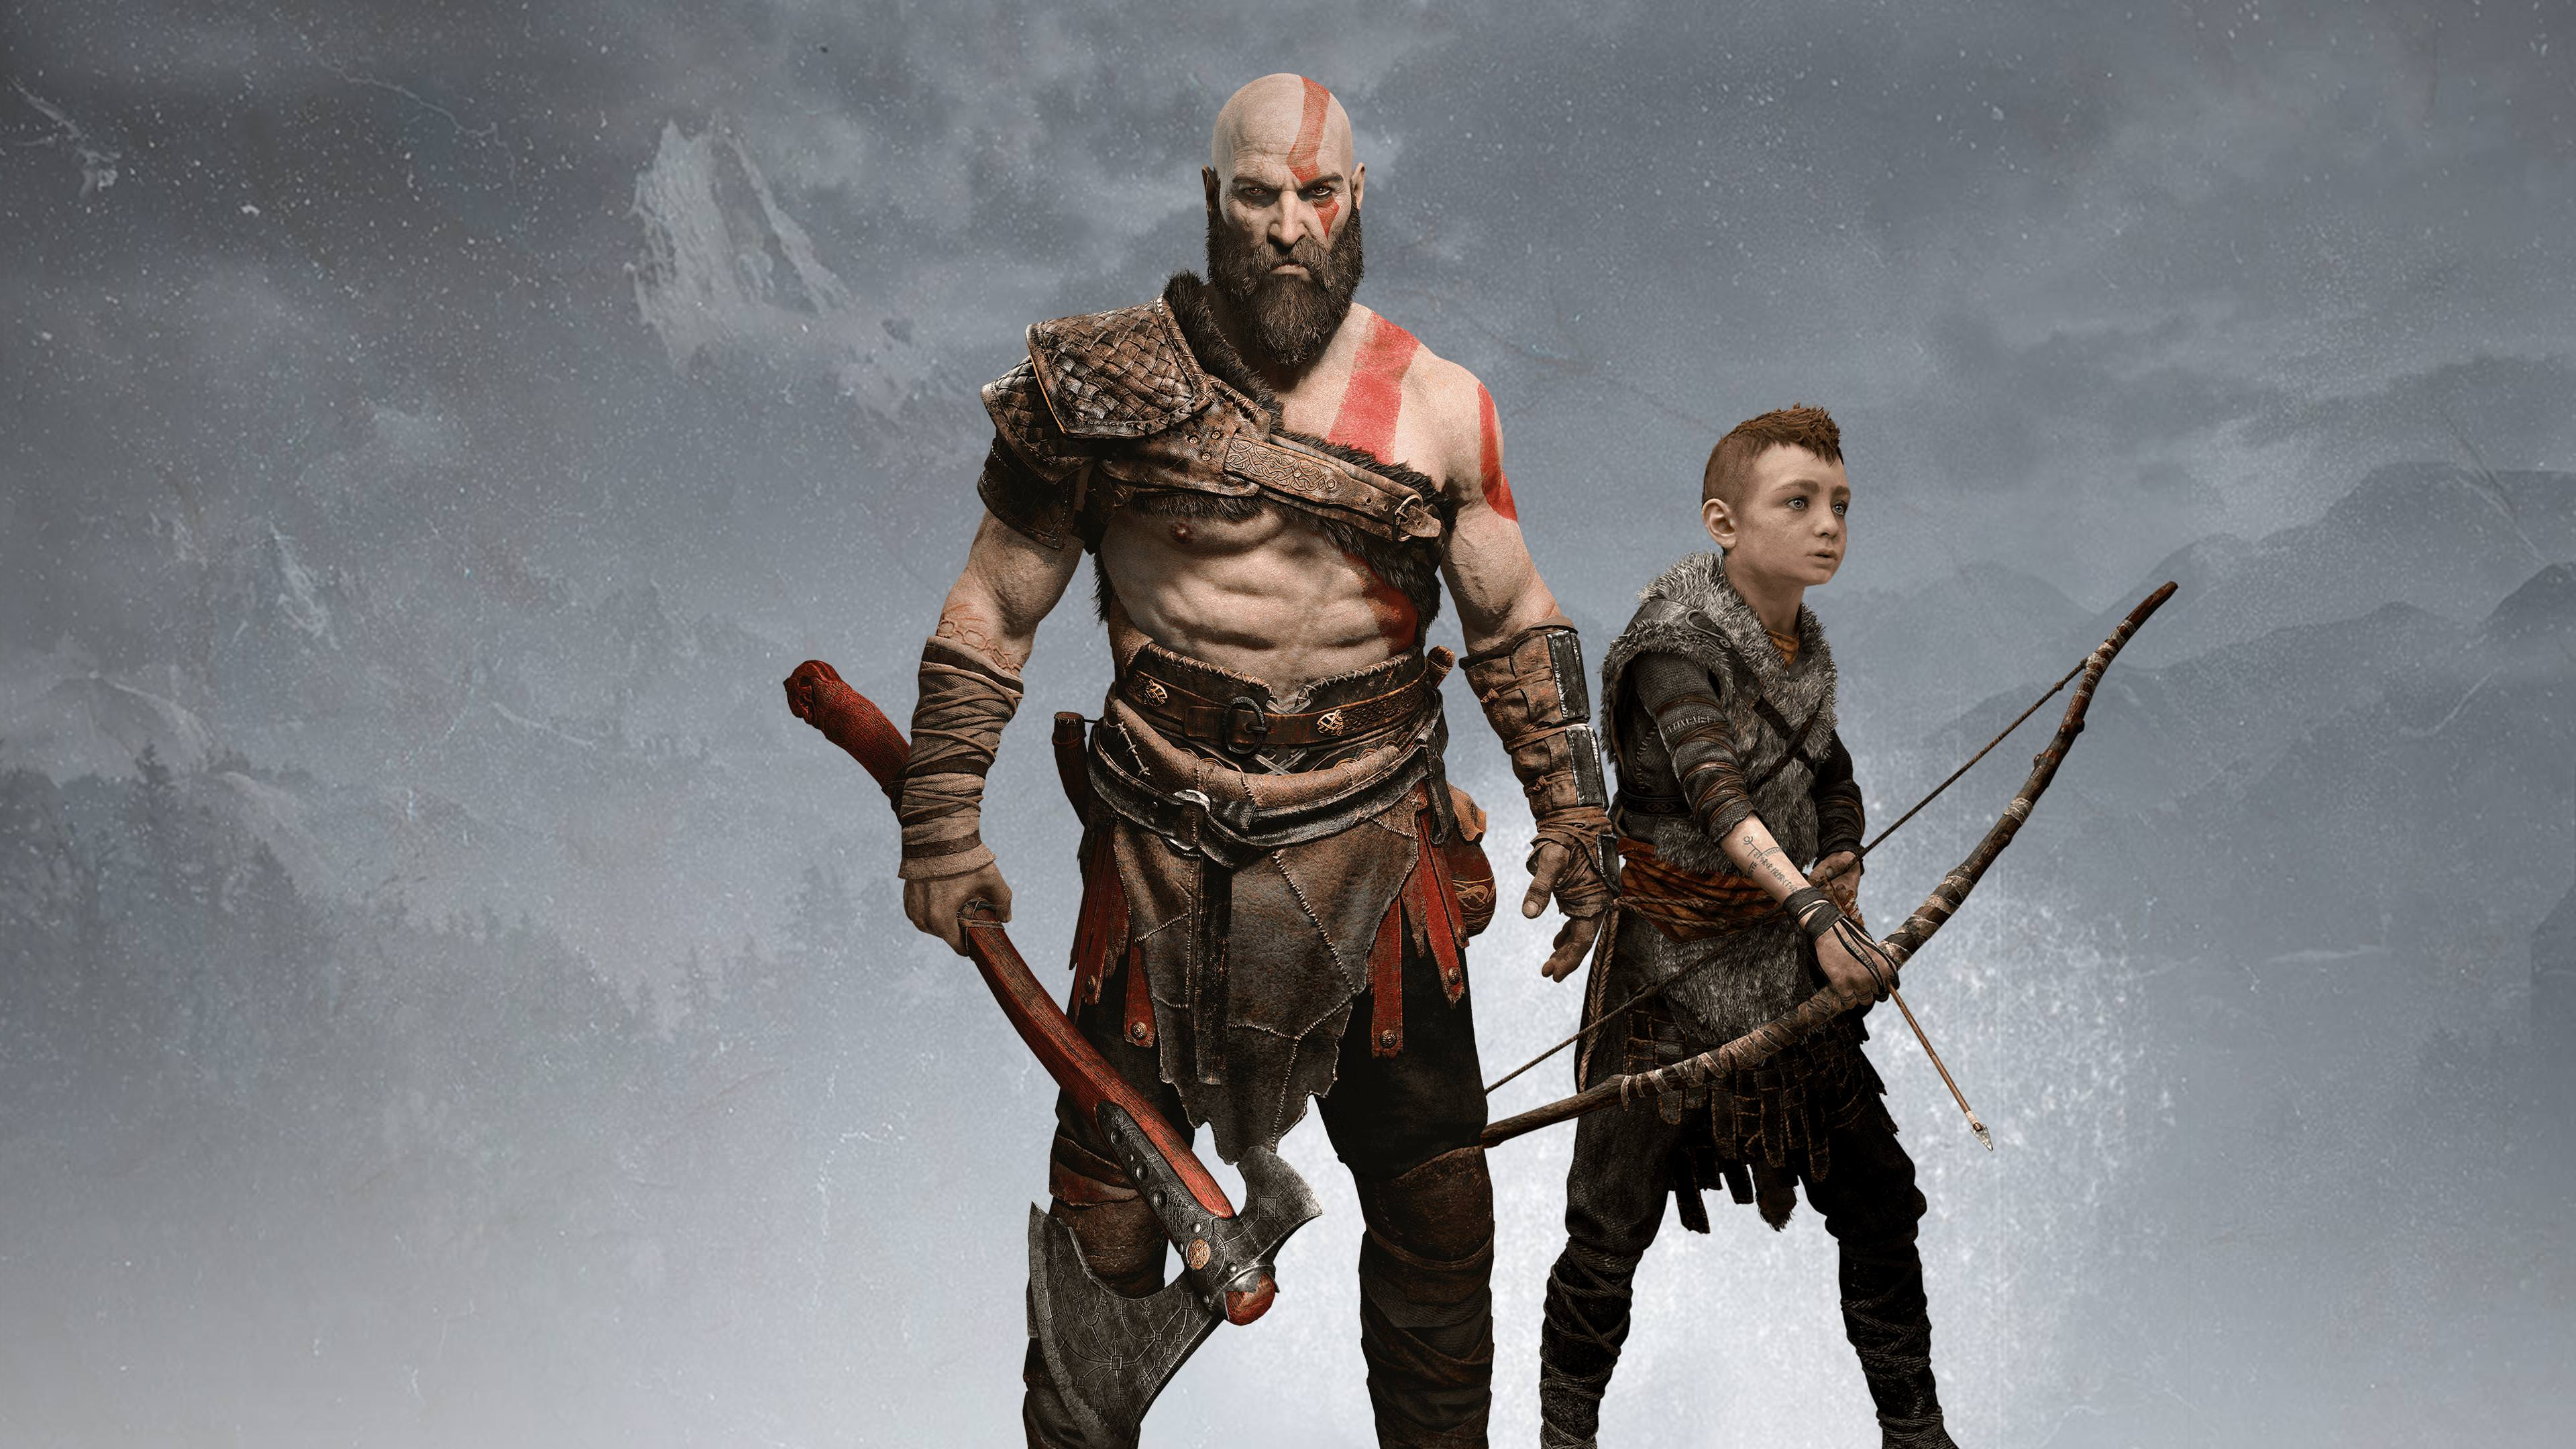 God of War Collector's Edition PlayStation 4 2018 4K6224114634 - God of War Collector's Edition PlayStation 4 2018 4K - War, PLAYSTATION, Man, God, Edition, Collector's, 2018